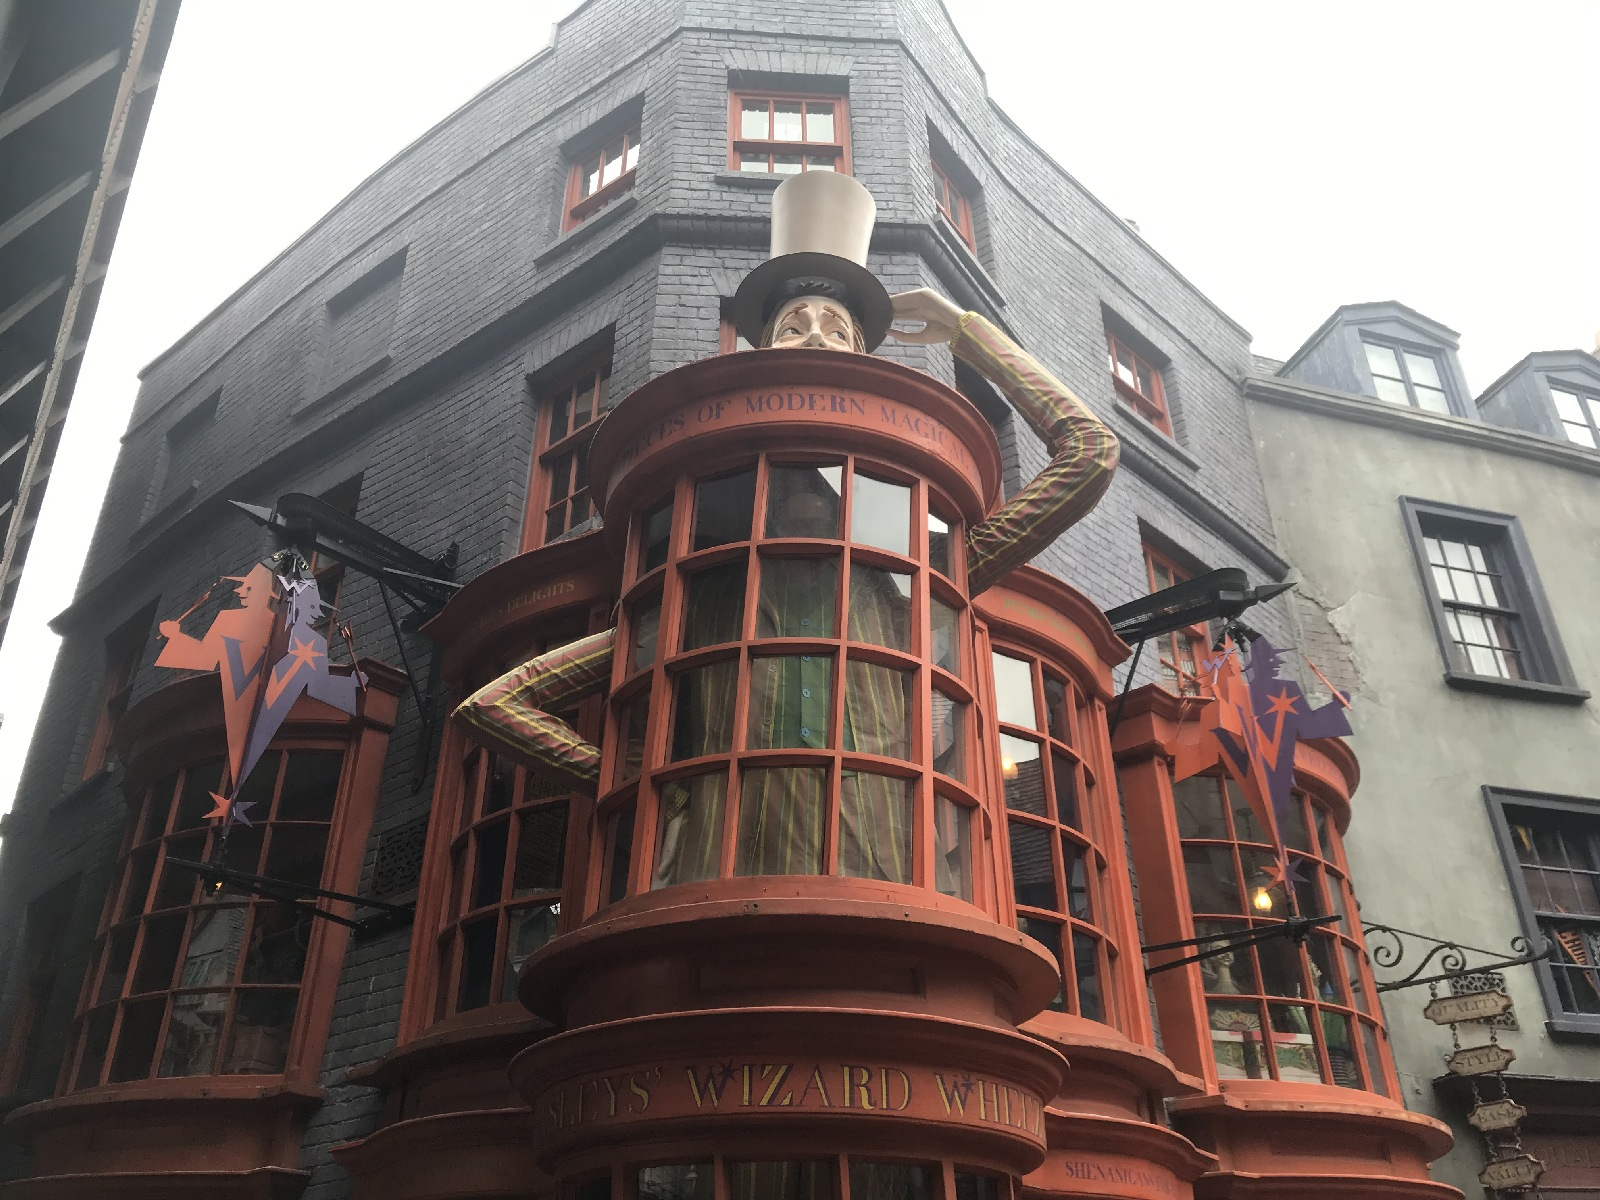 Guide To Harry Potter World In Universal Studios, Orlando